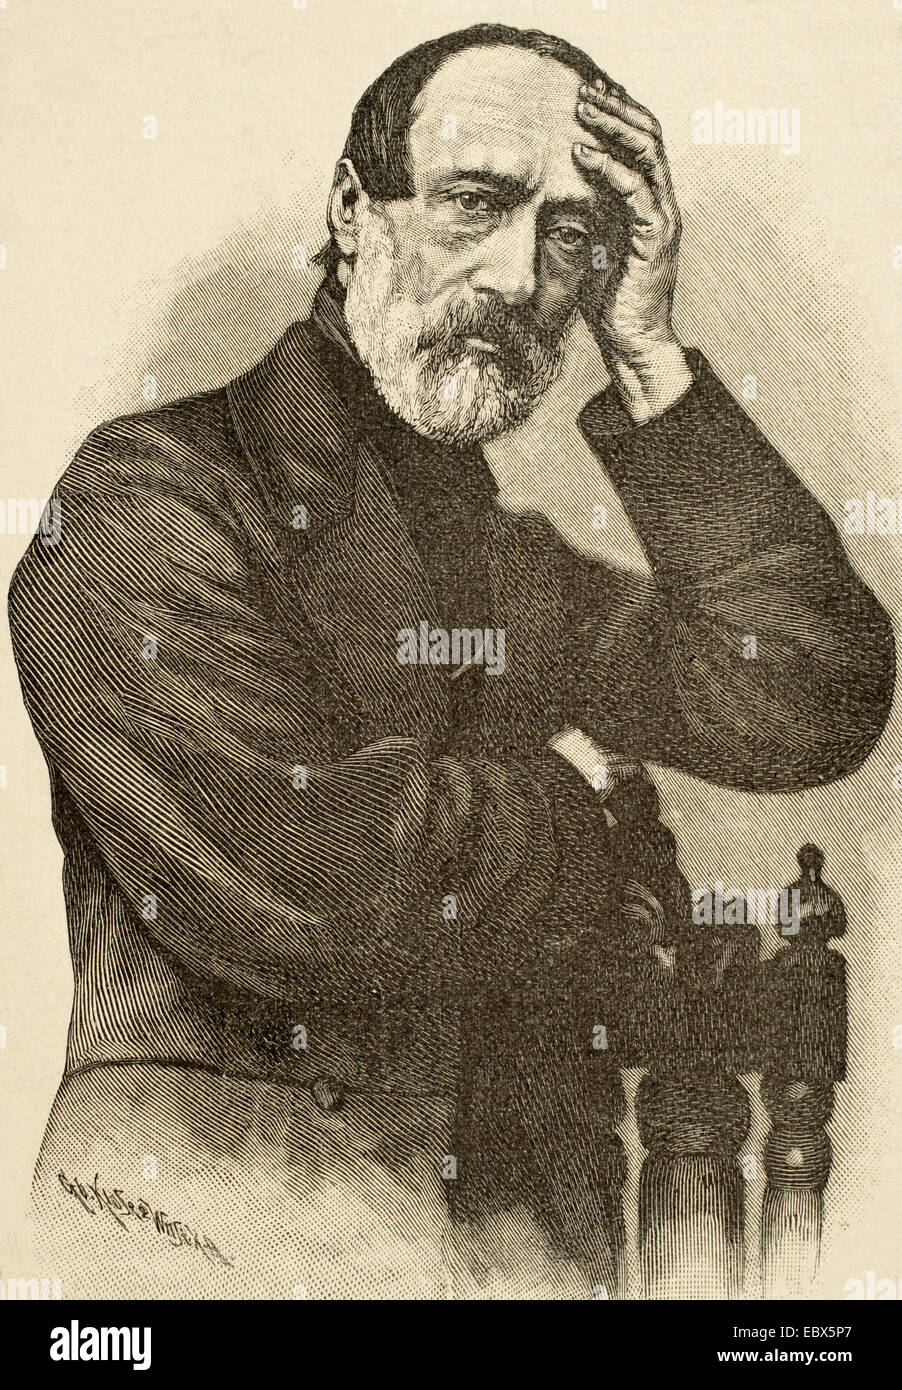 Giuseppe Mazzini (1805-1872). Italian politician, activist for the unification of Italy. Engraving by Klose. Historia - Stock Image